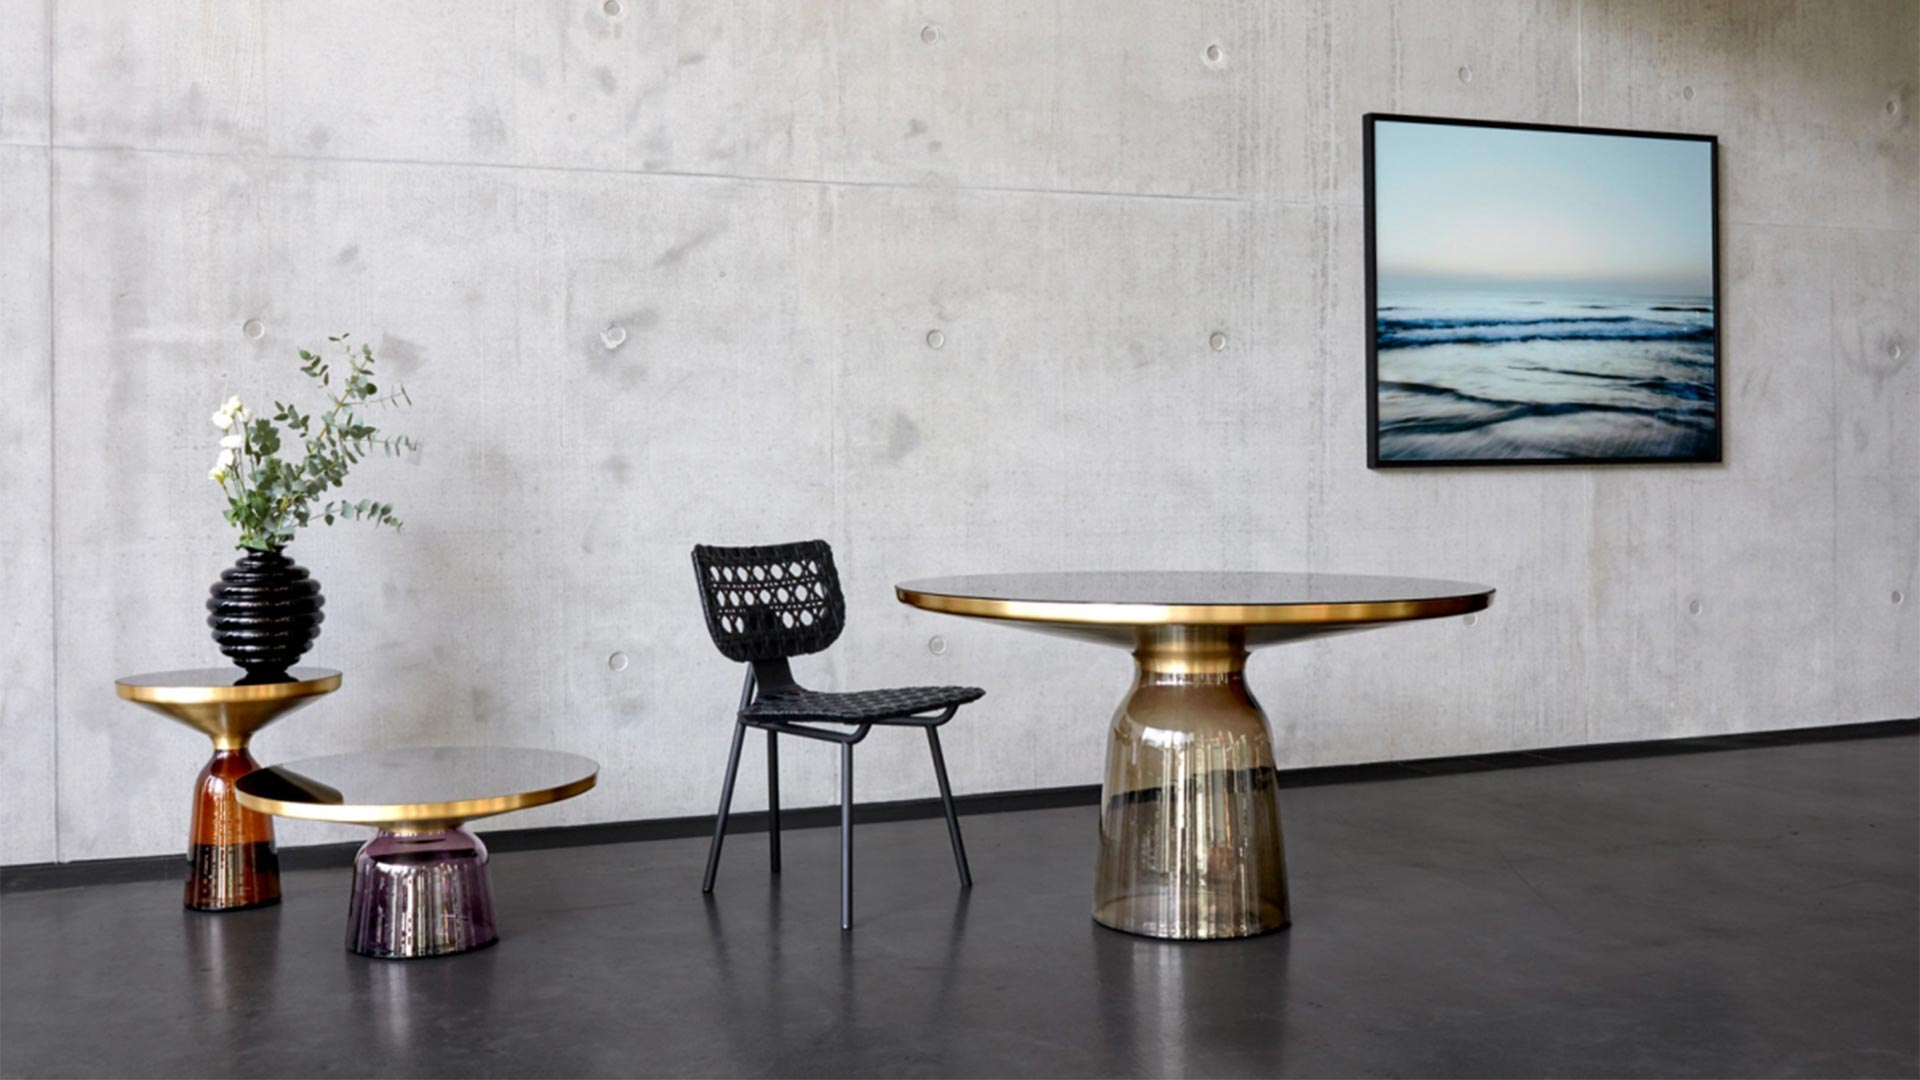 ClassiCon Bell Table in Berlin bei steidten+